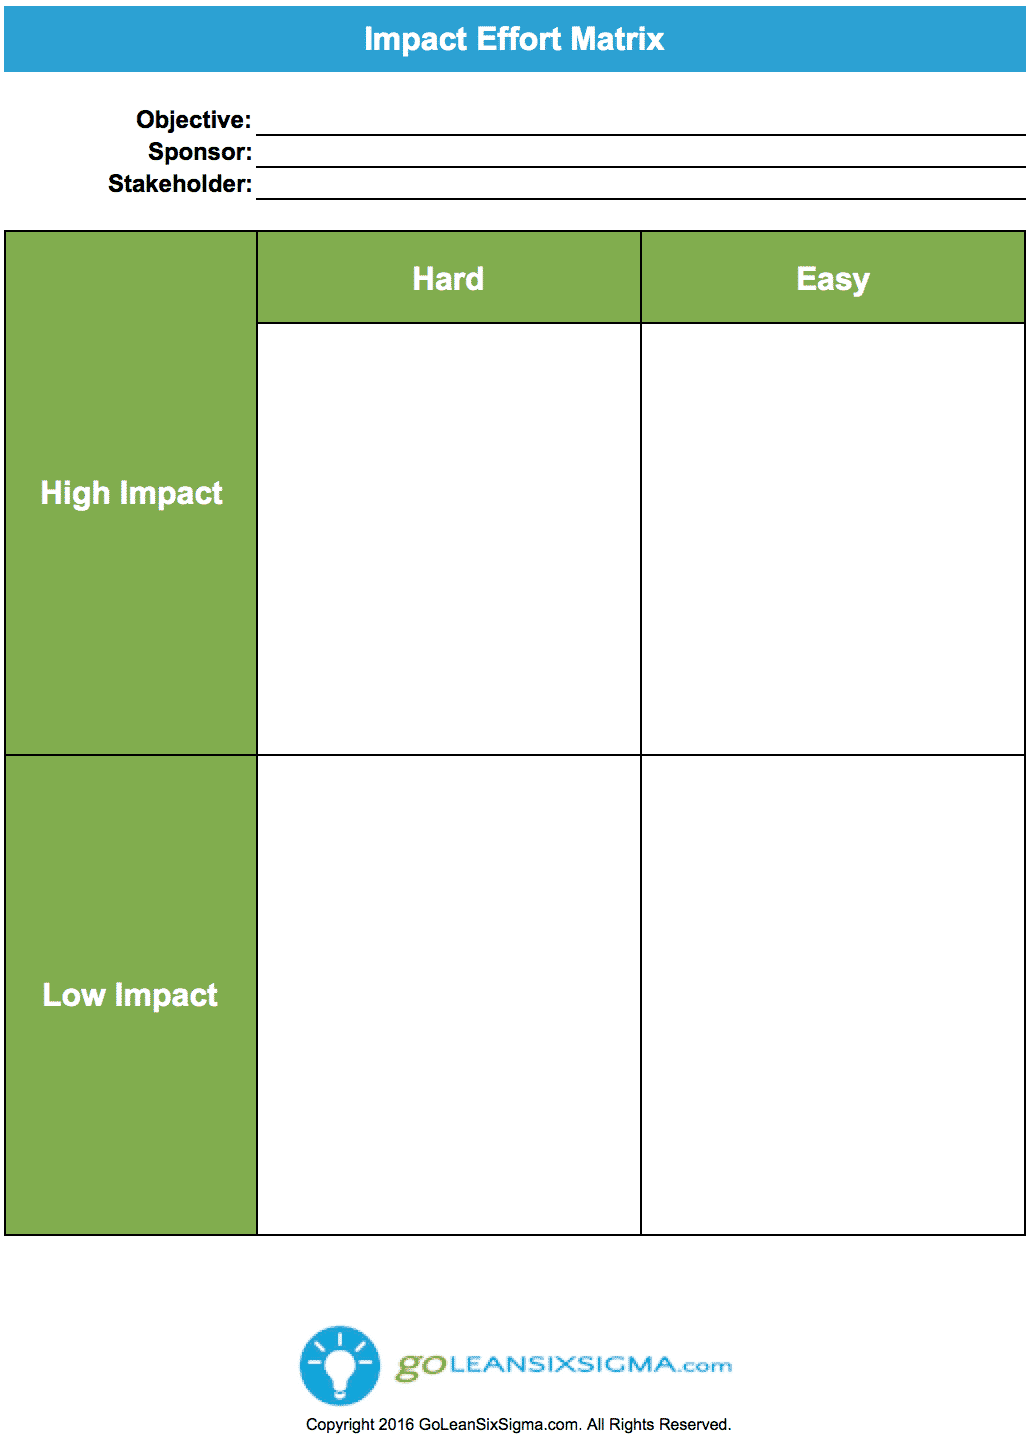 What Is An Impact Effort Matrix